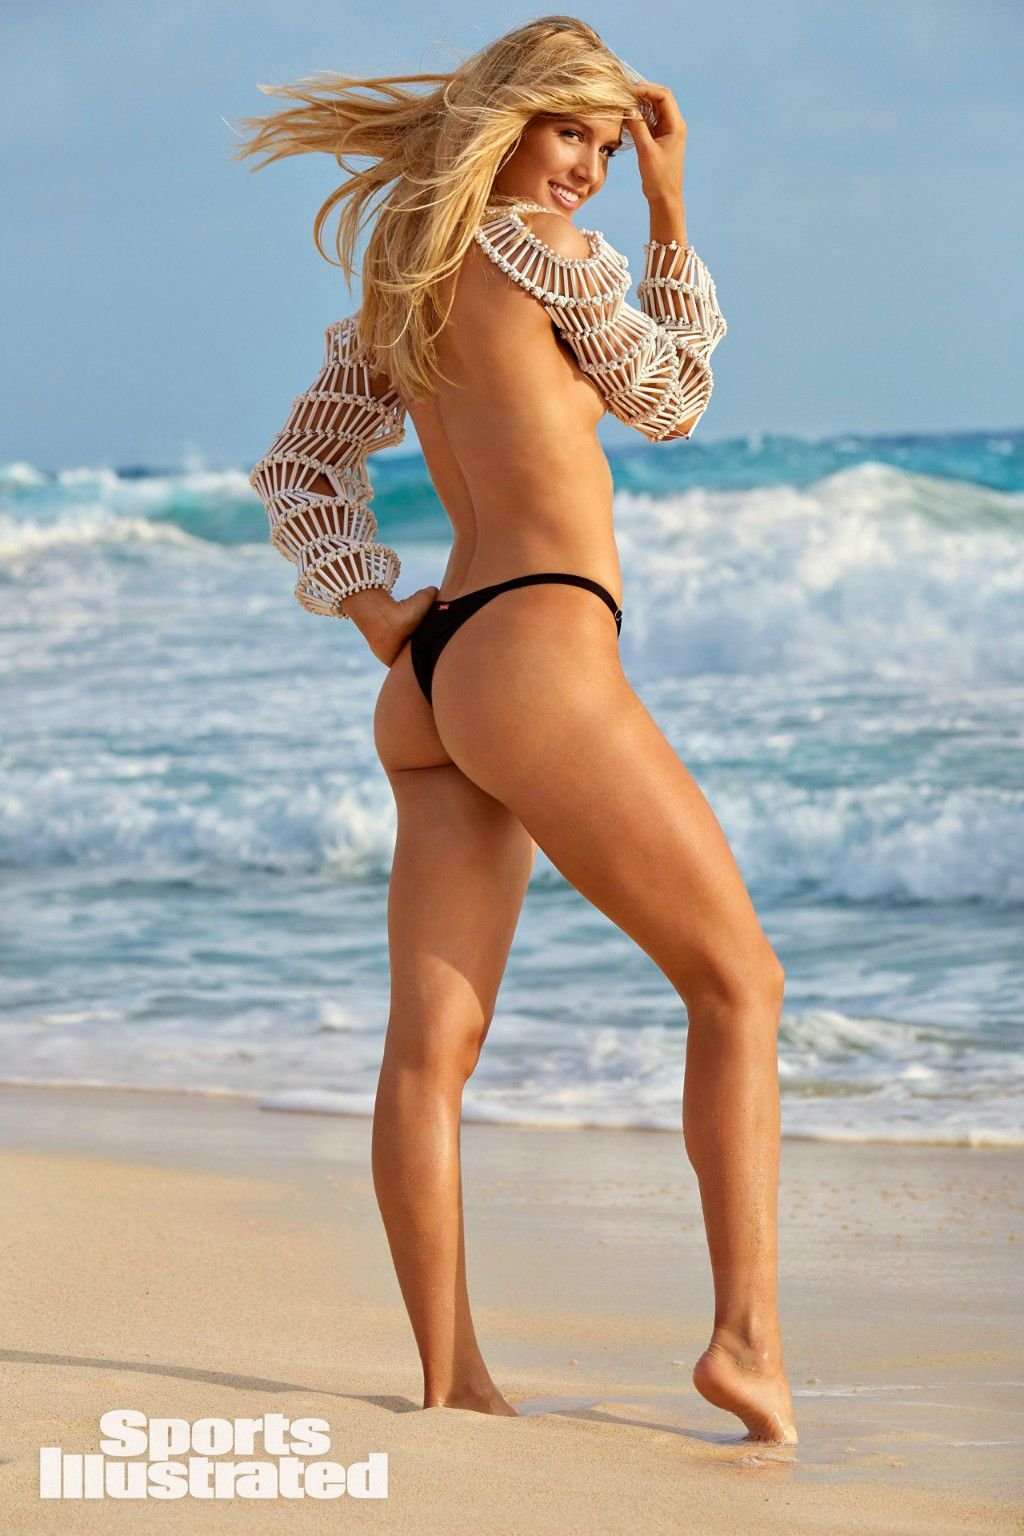 eugenie-bouchard-super-sexy-in-sports-illustrated-swimsuit-issue-2018-5